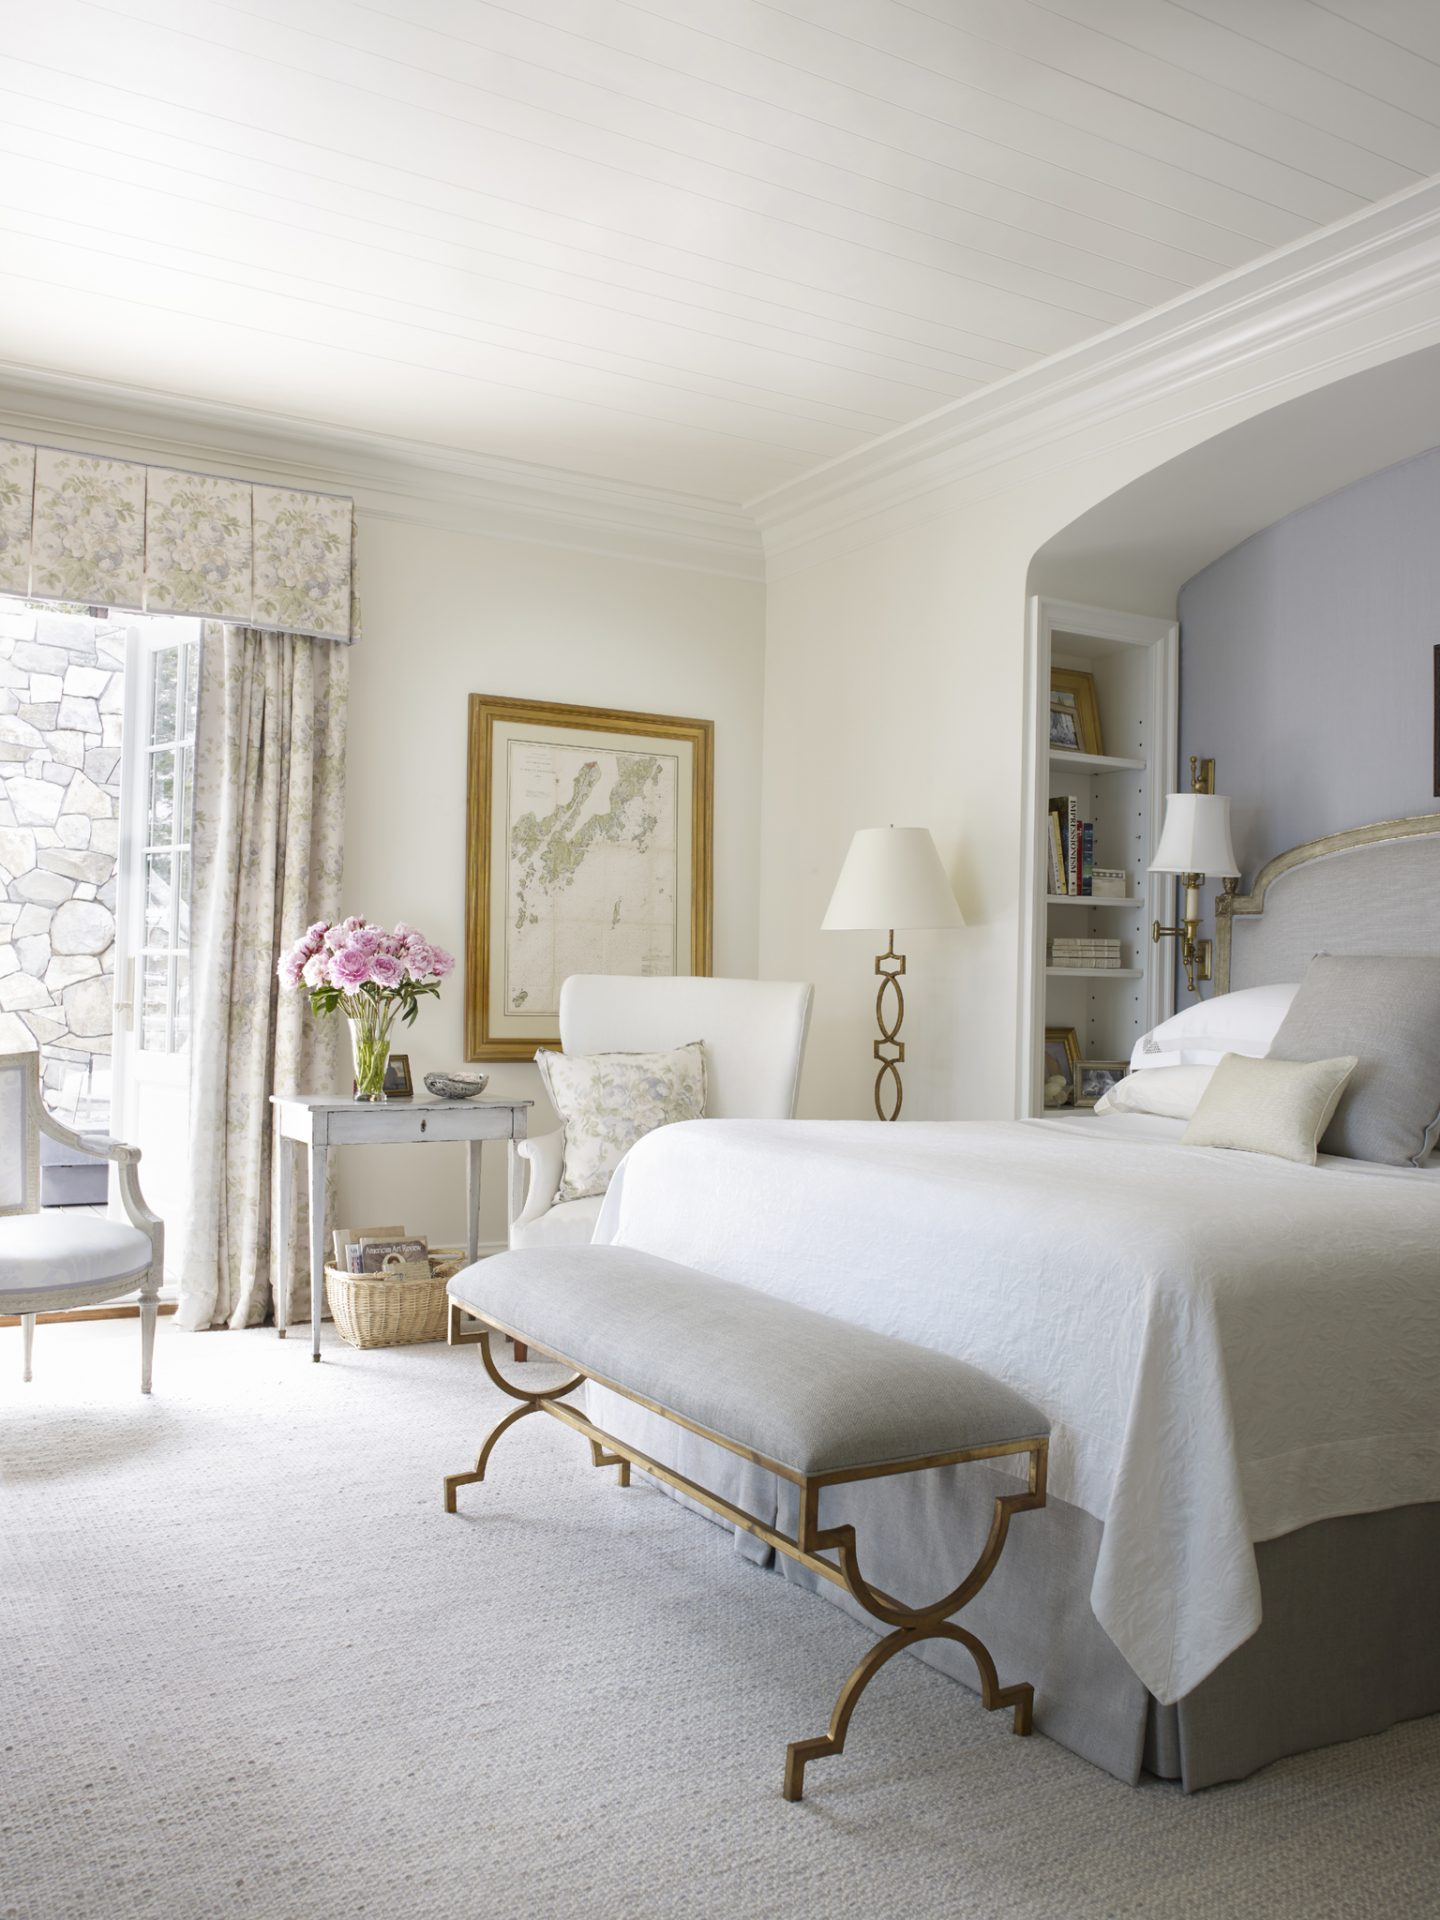 In an architecturally magnificent home in Maine with interior design by Suzanne Kasler, the master bedroom is bright and full of light. The tranquil pale blue grey accents and soothing sumptuous fabrics set a peaceful tone in the heavenly retreat.